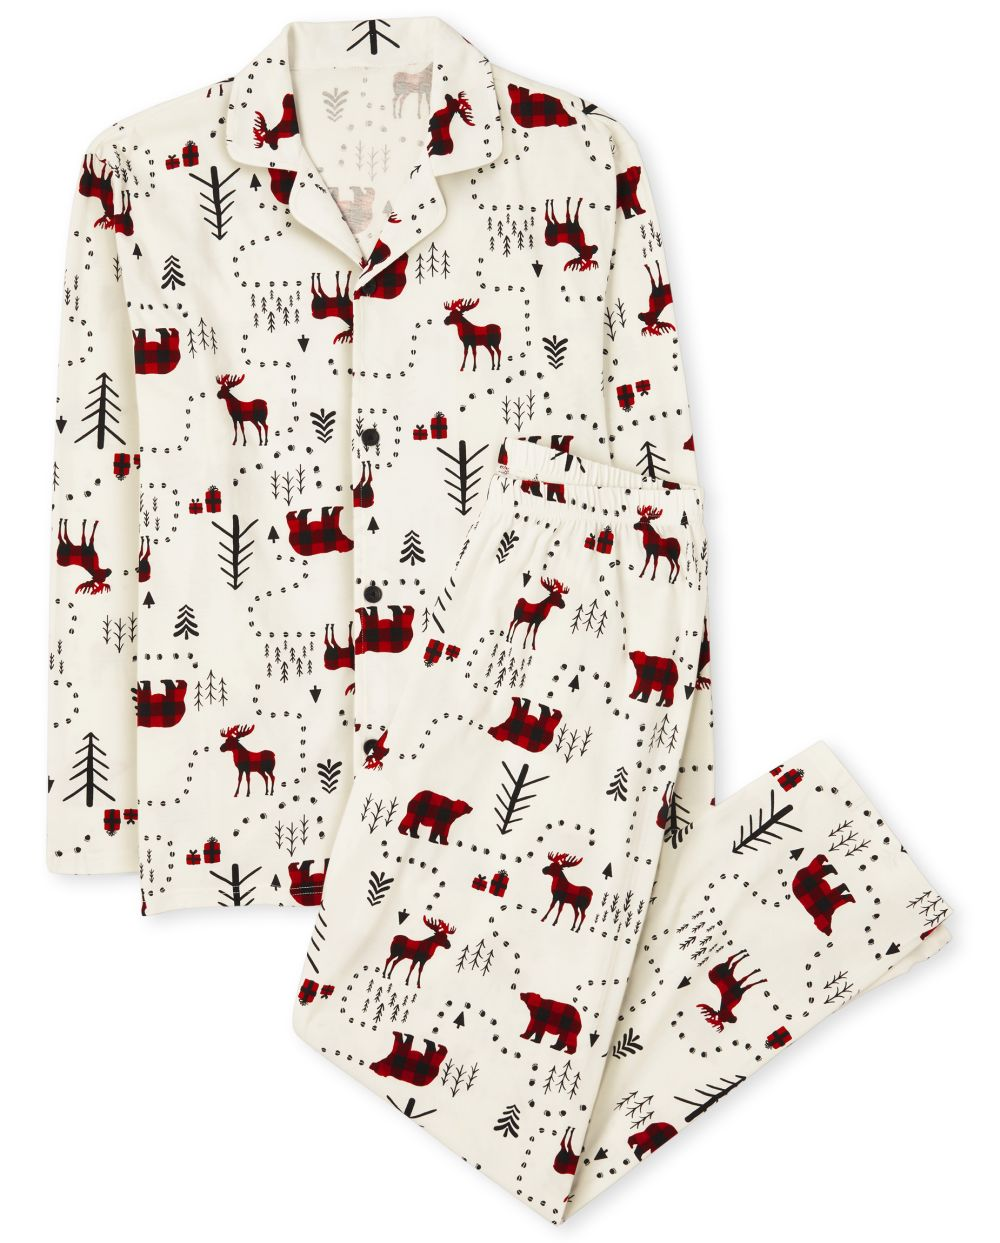 Unisex Adult Matching Family Winter Forest Cotton Pajamas - White - The Children' Place